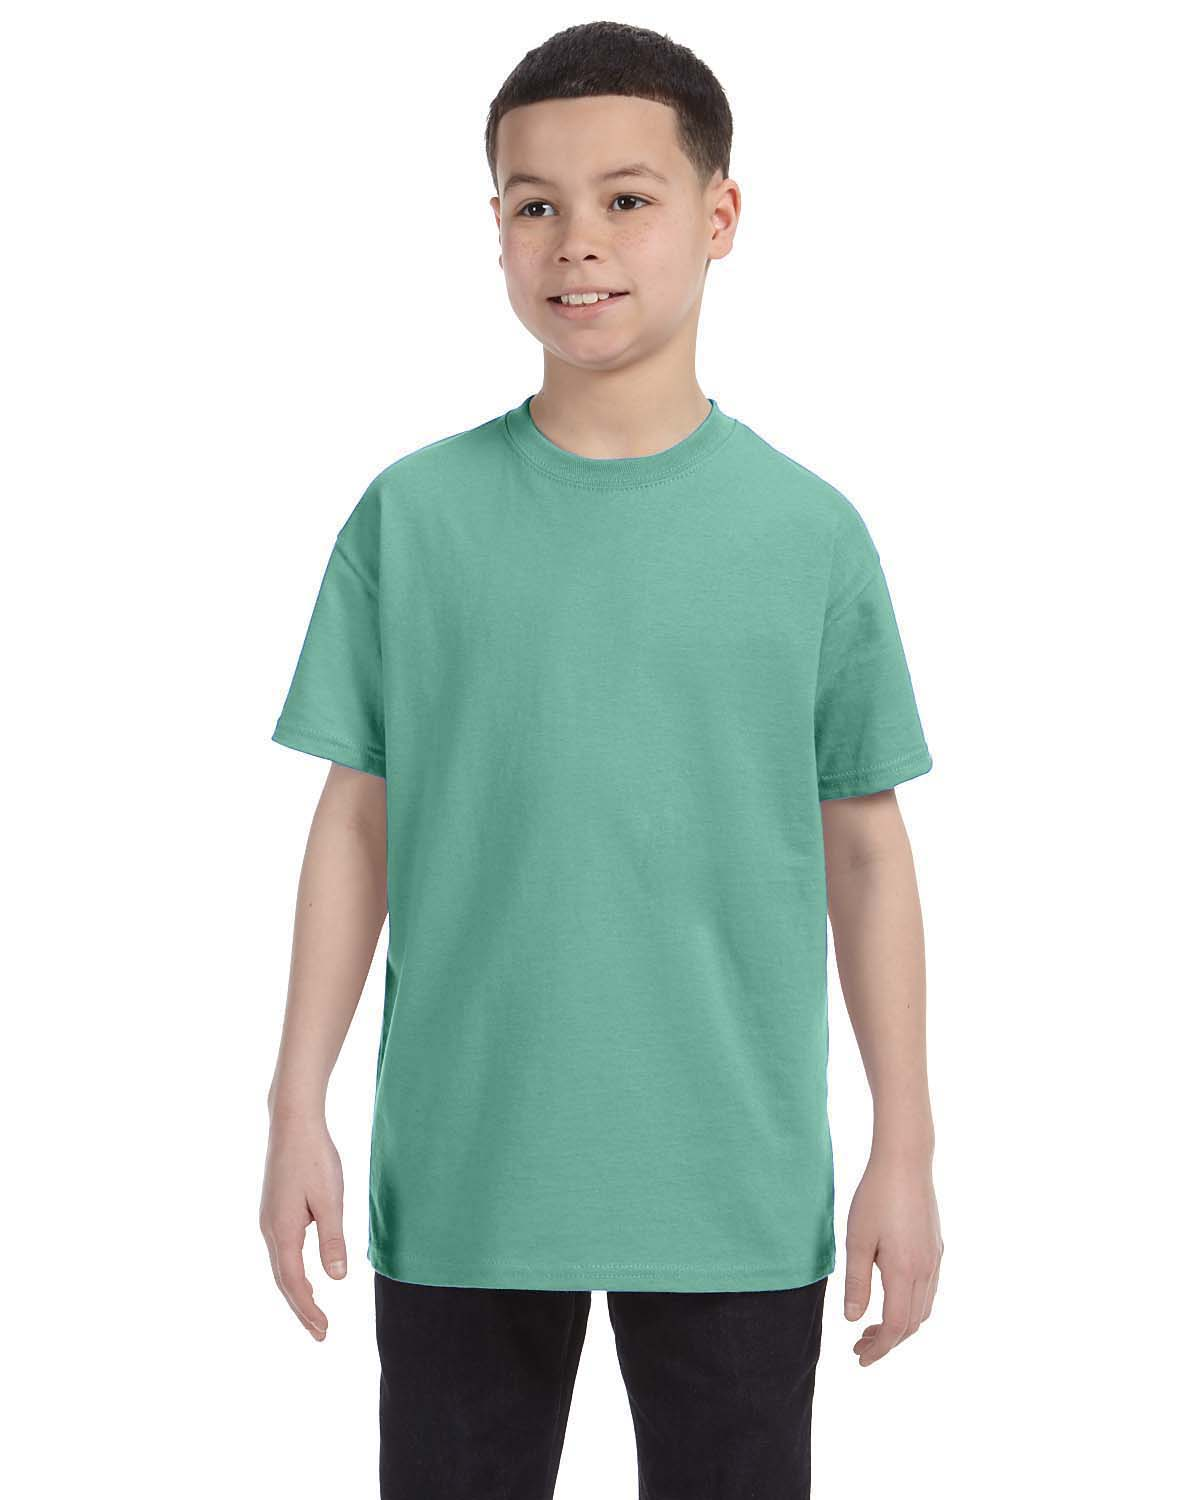 NEW Hanes Youth 100/% Cotton Heavy Tagless T-Shirt M-54500